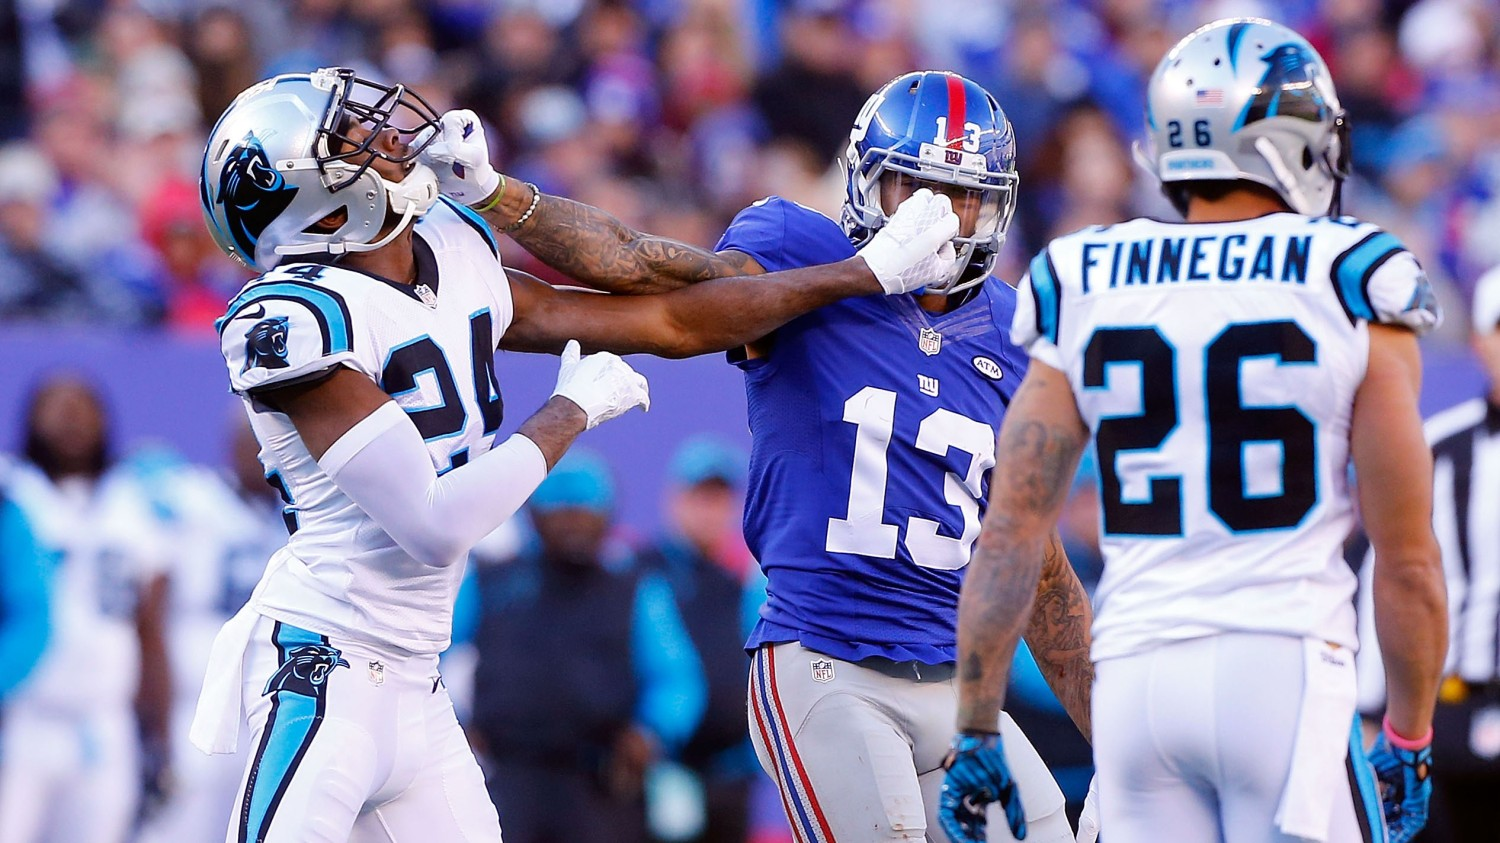 Carolina Panthers v New York Giants